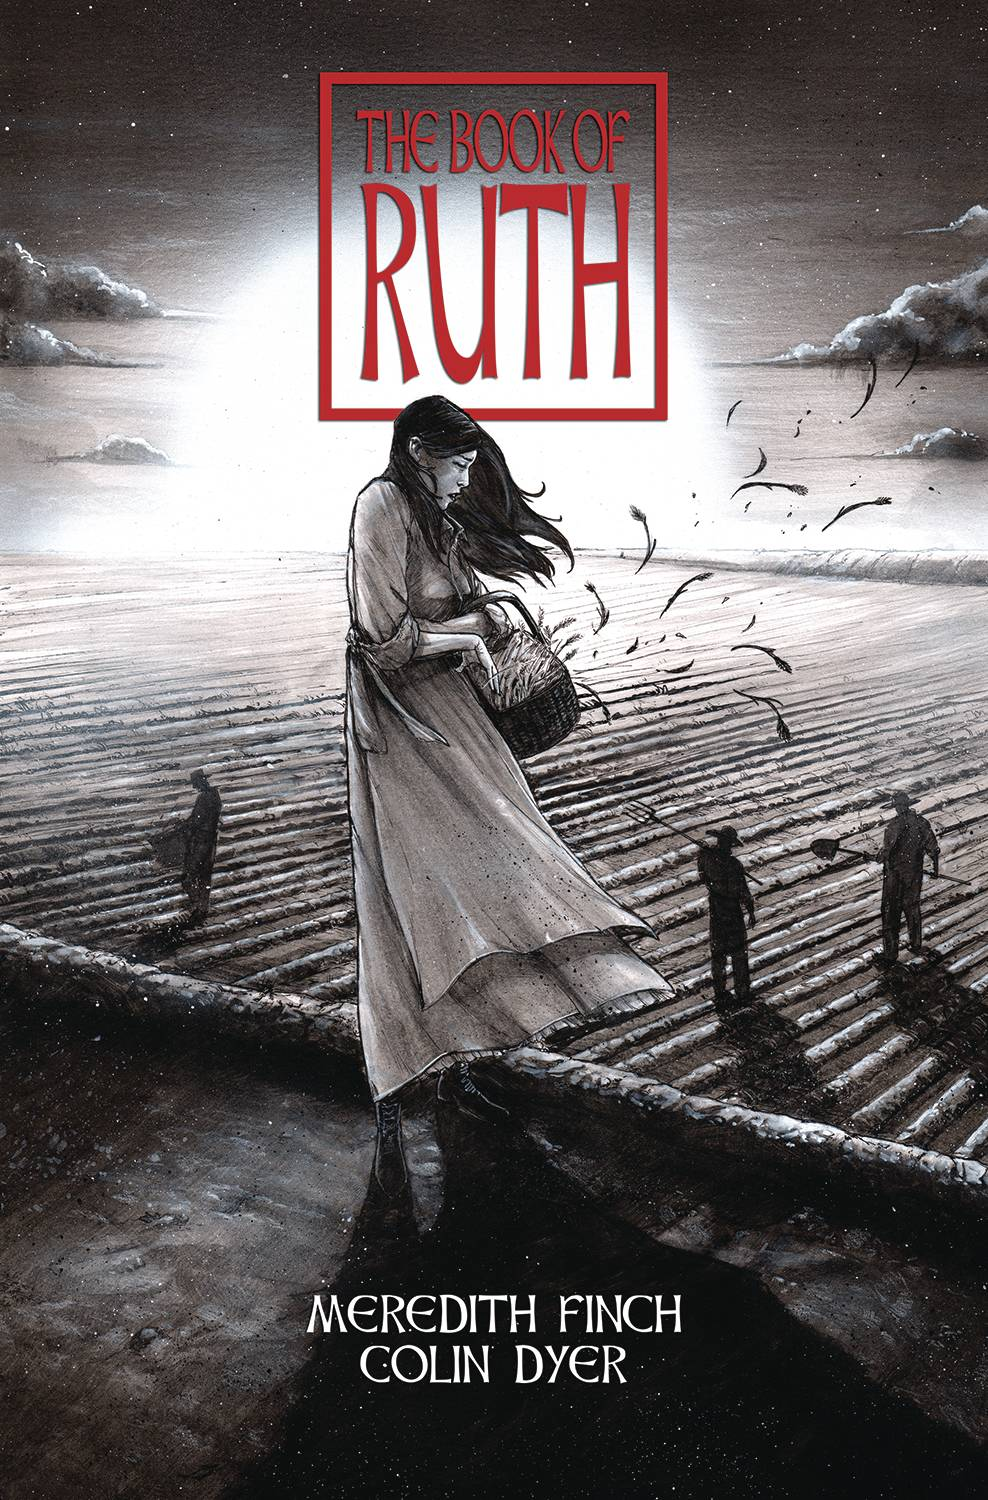 BOOK OF RUTH TP